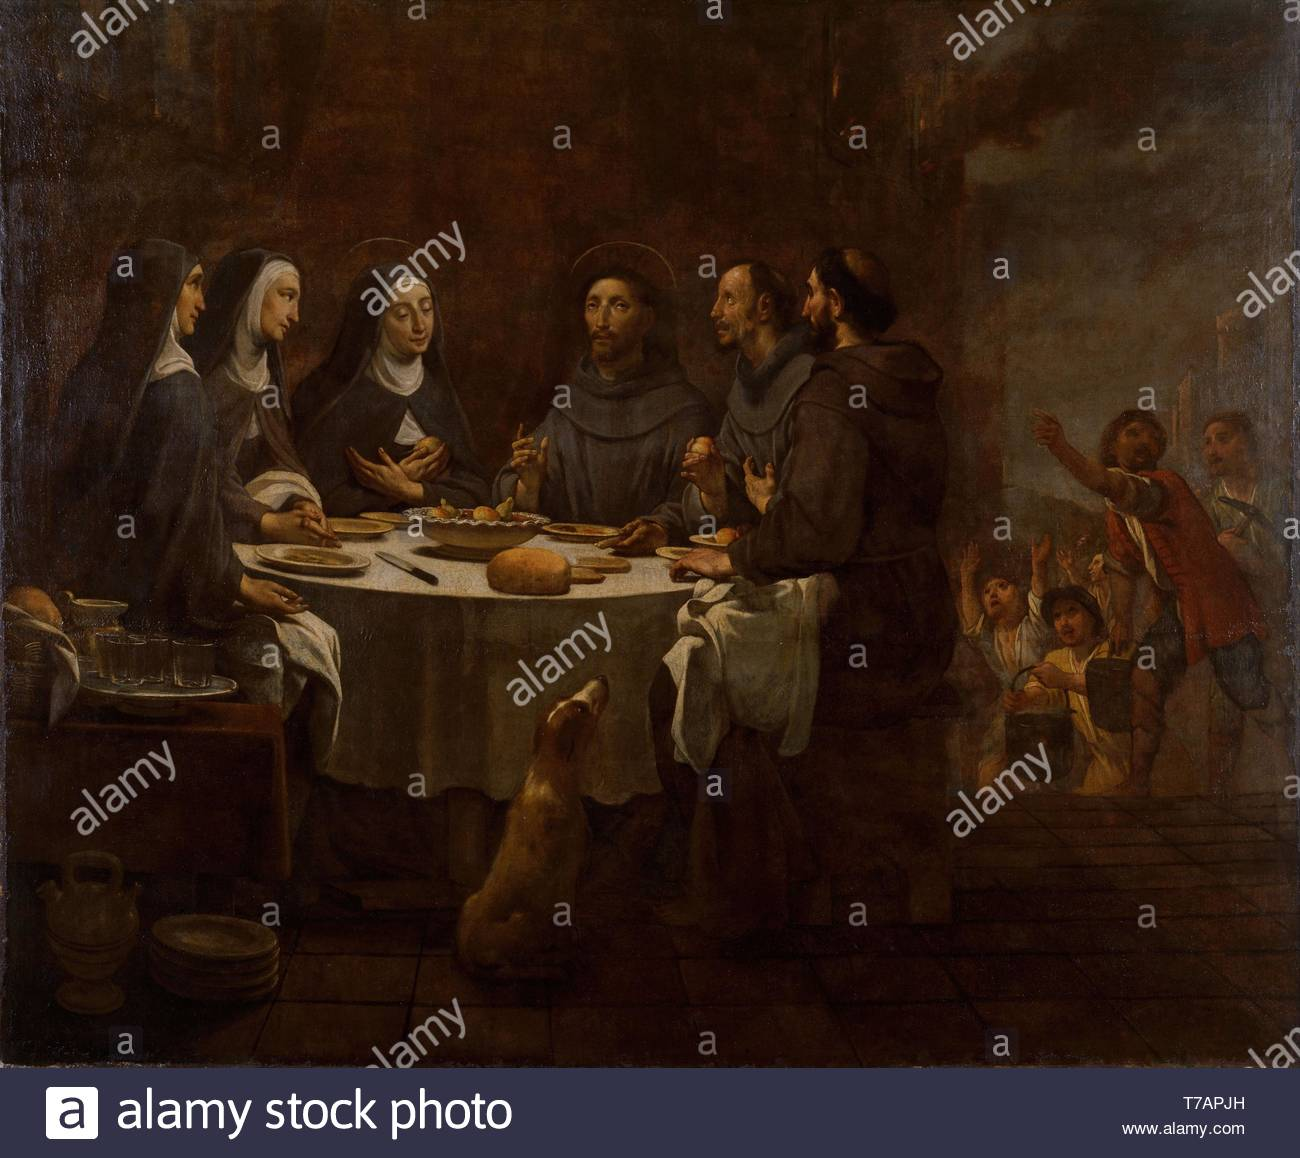 Antoni-Viladomat-Y-Manalt-Saint Francis and Saint Clare at Supper in the Convent of Saint Damian - Stock Image